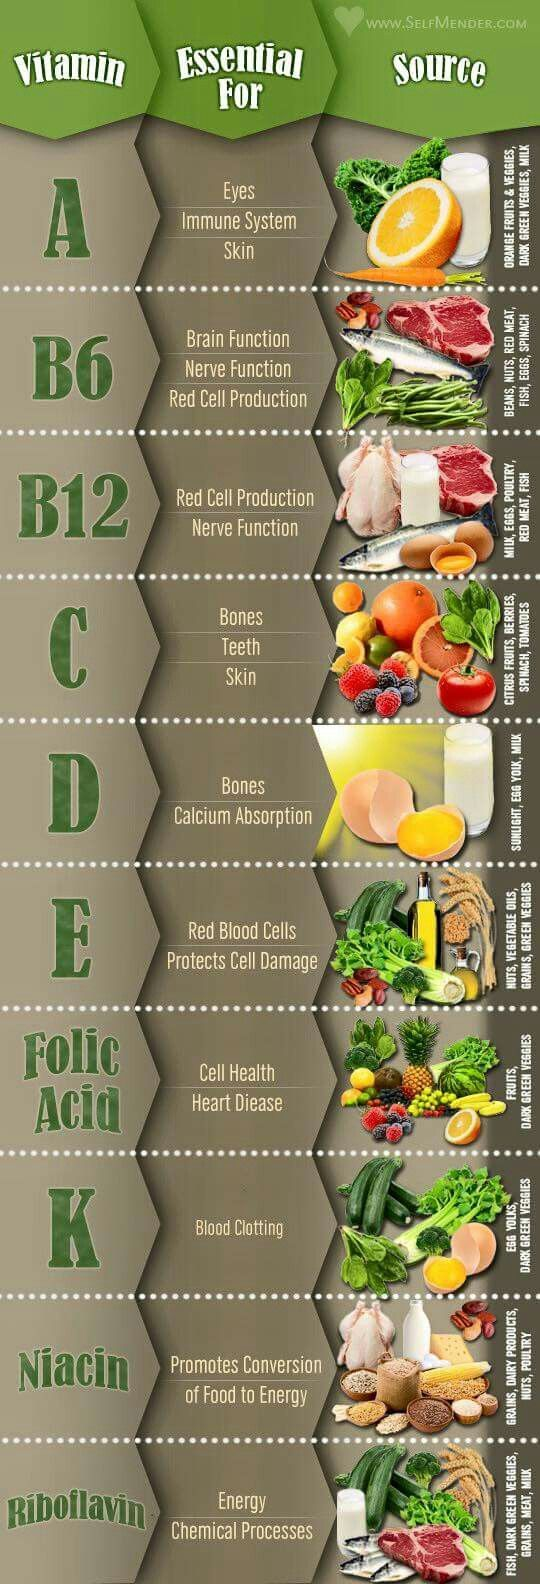 Use this chart to help you eat all the essential vitamins. Kale full of vitamin A, helps with skin and eyes. The folic acid in pineapple will promote the health of your cells. Read the chart. To read more health tips go to http://internationalhealthgroup.com/ #Supplementtips